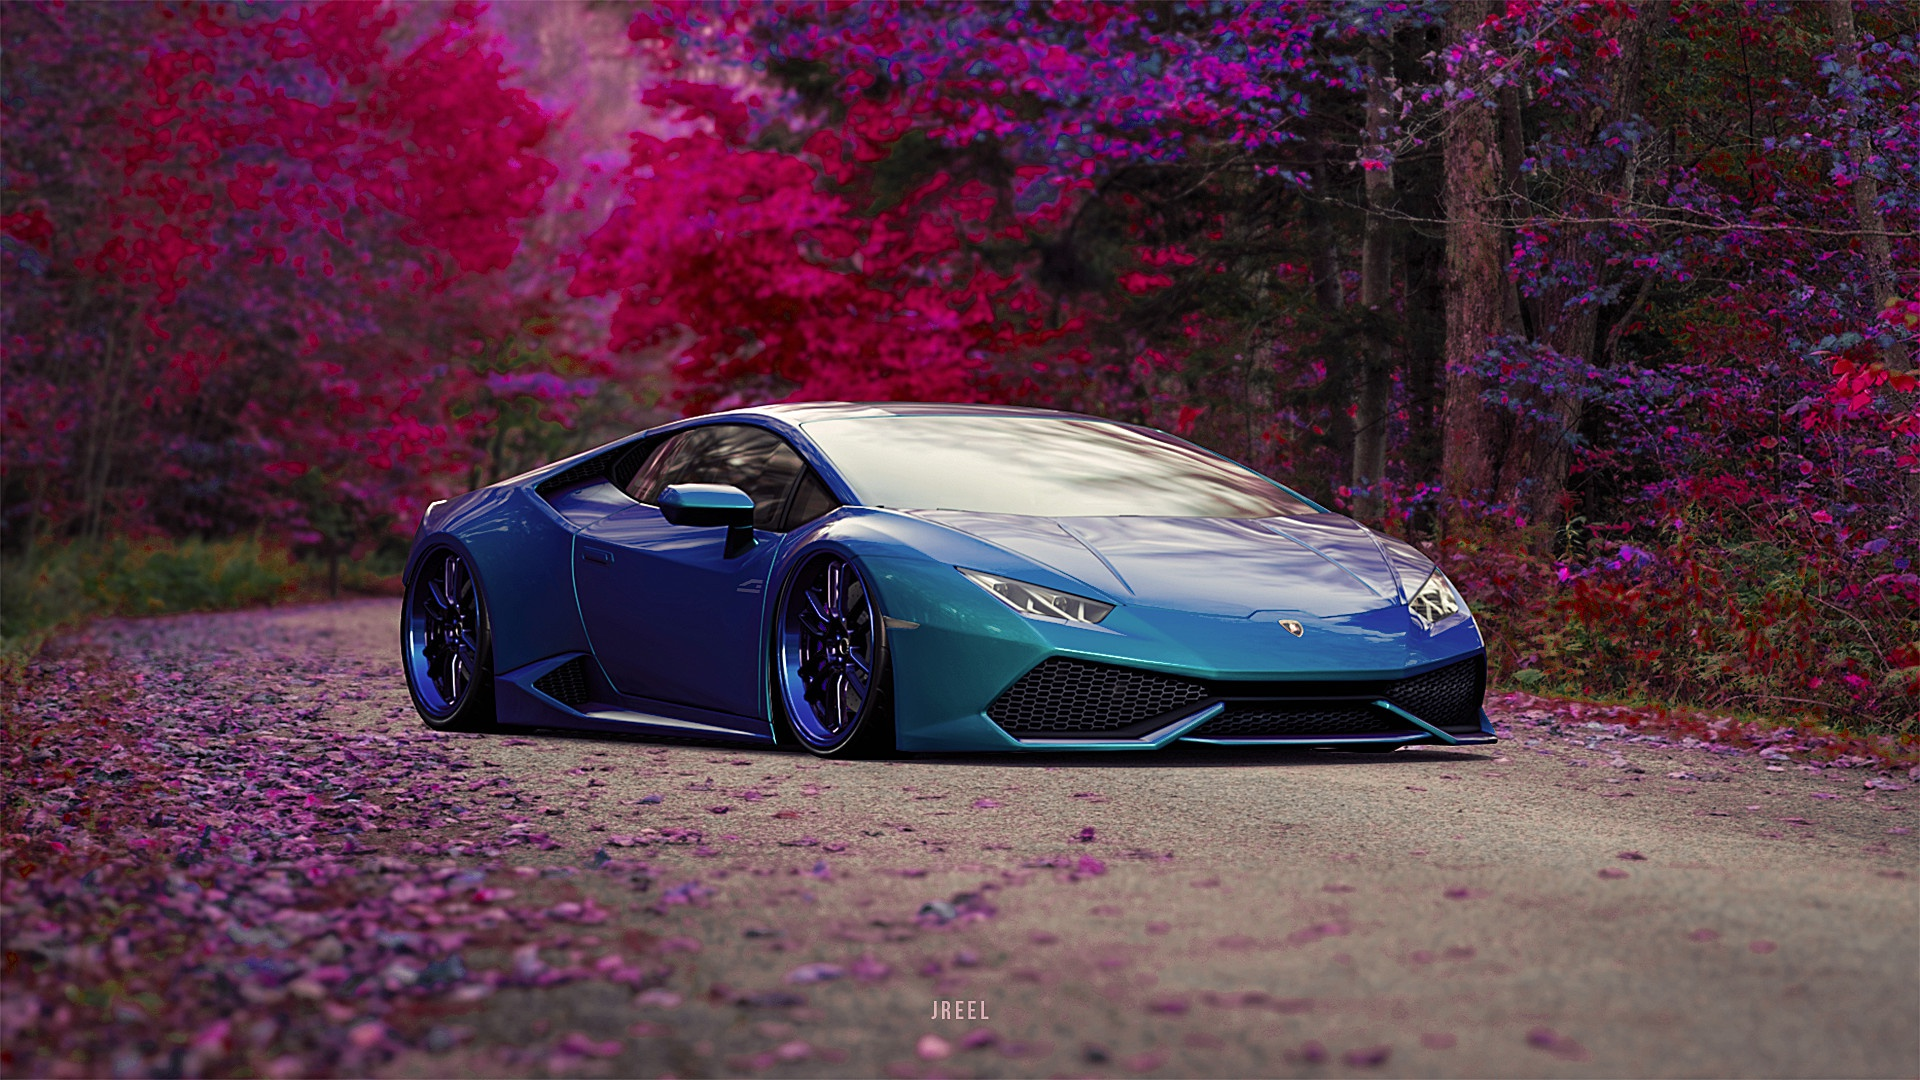 3840x2160 Blue Lamborghini Huracan Car 4k HD 4k Wallpapers